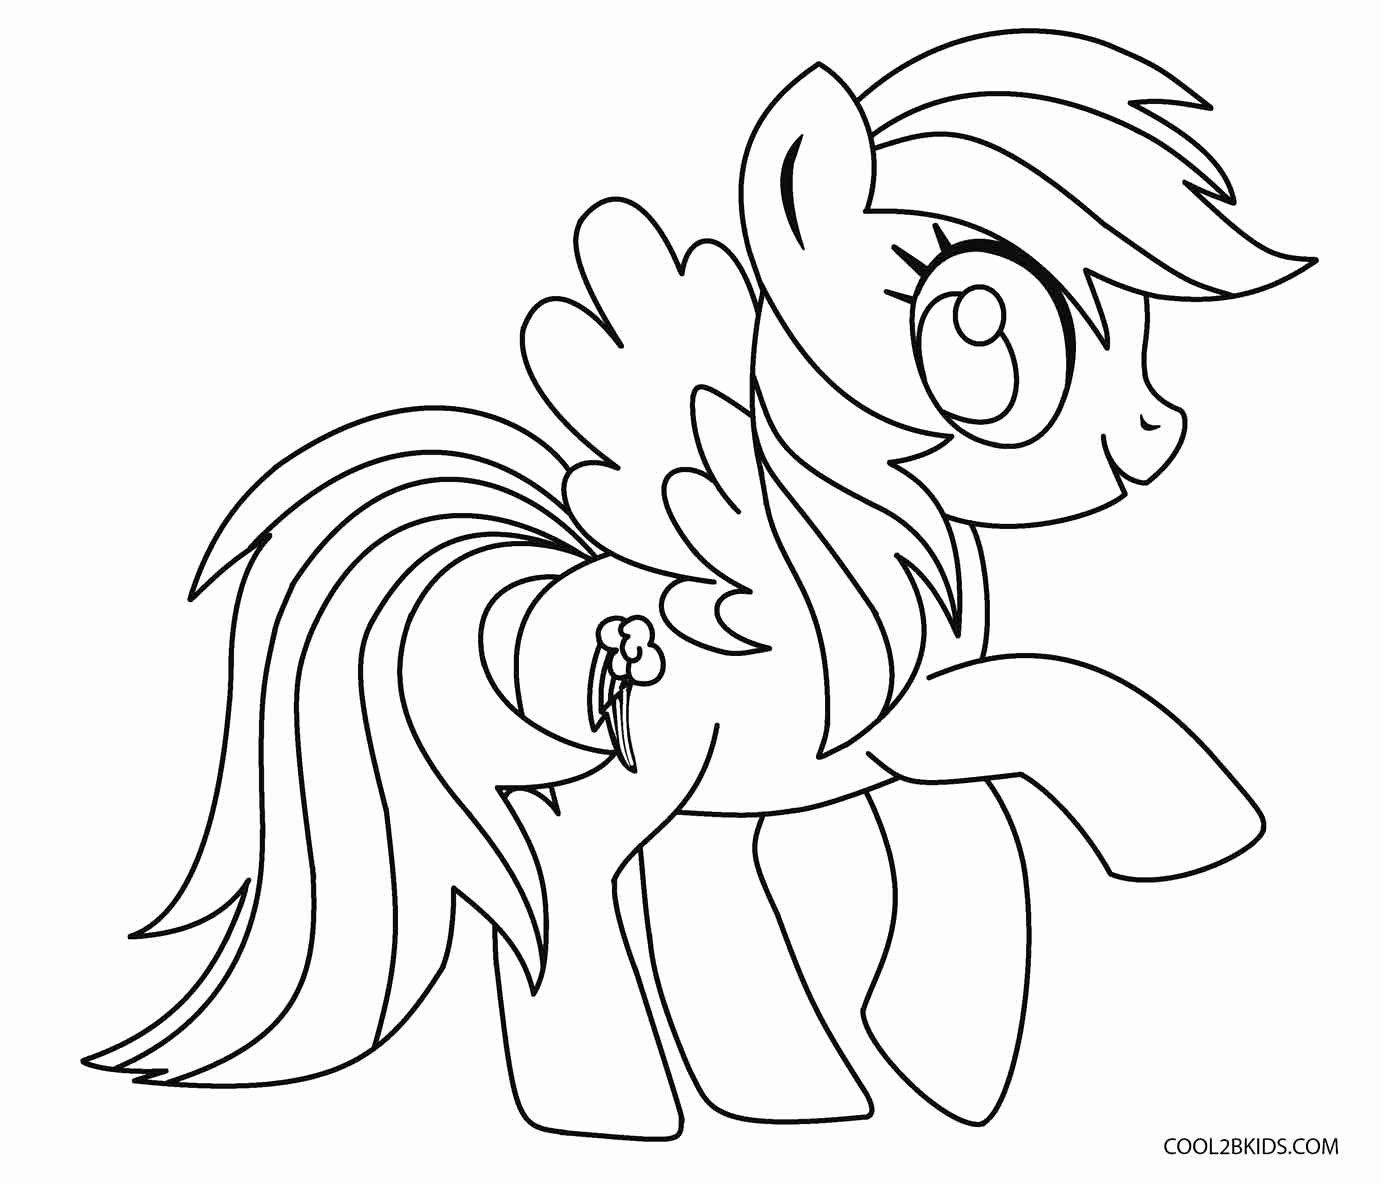 21 My Little Pony Coloring Book in 2020 My little pony